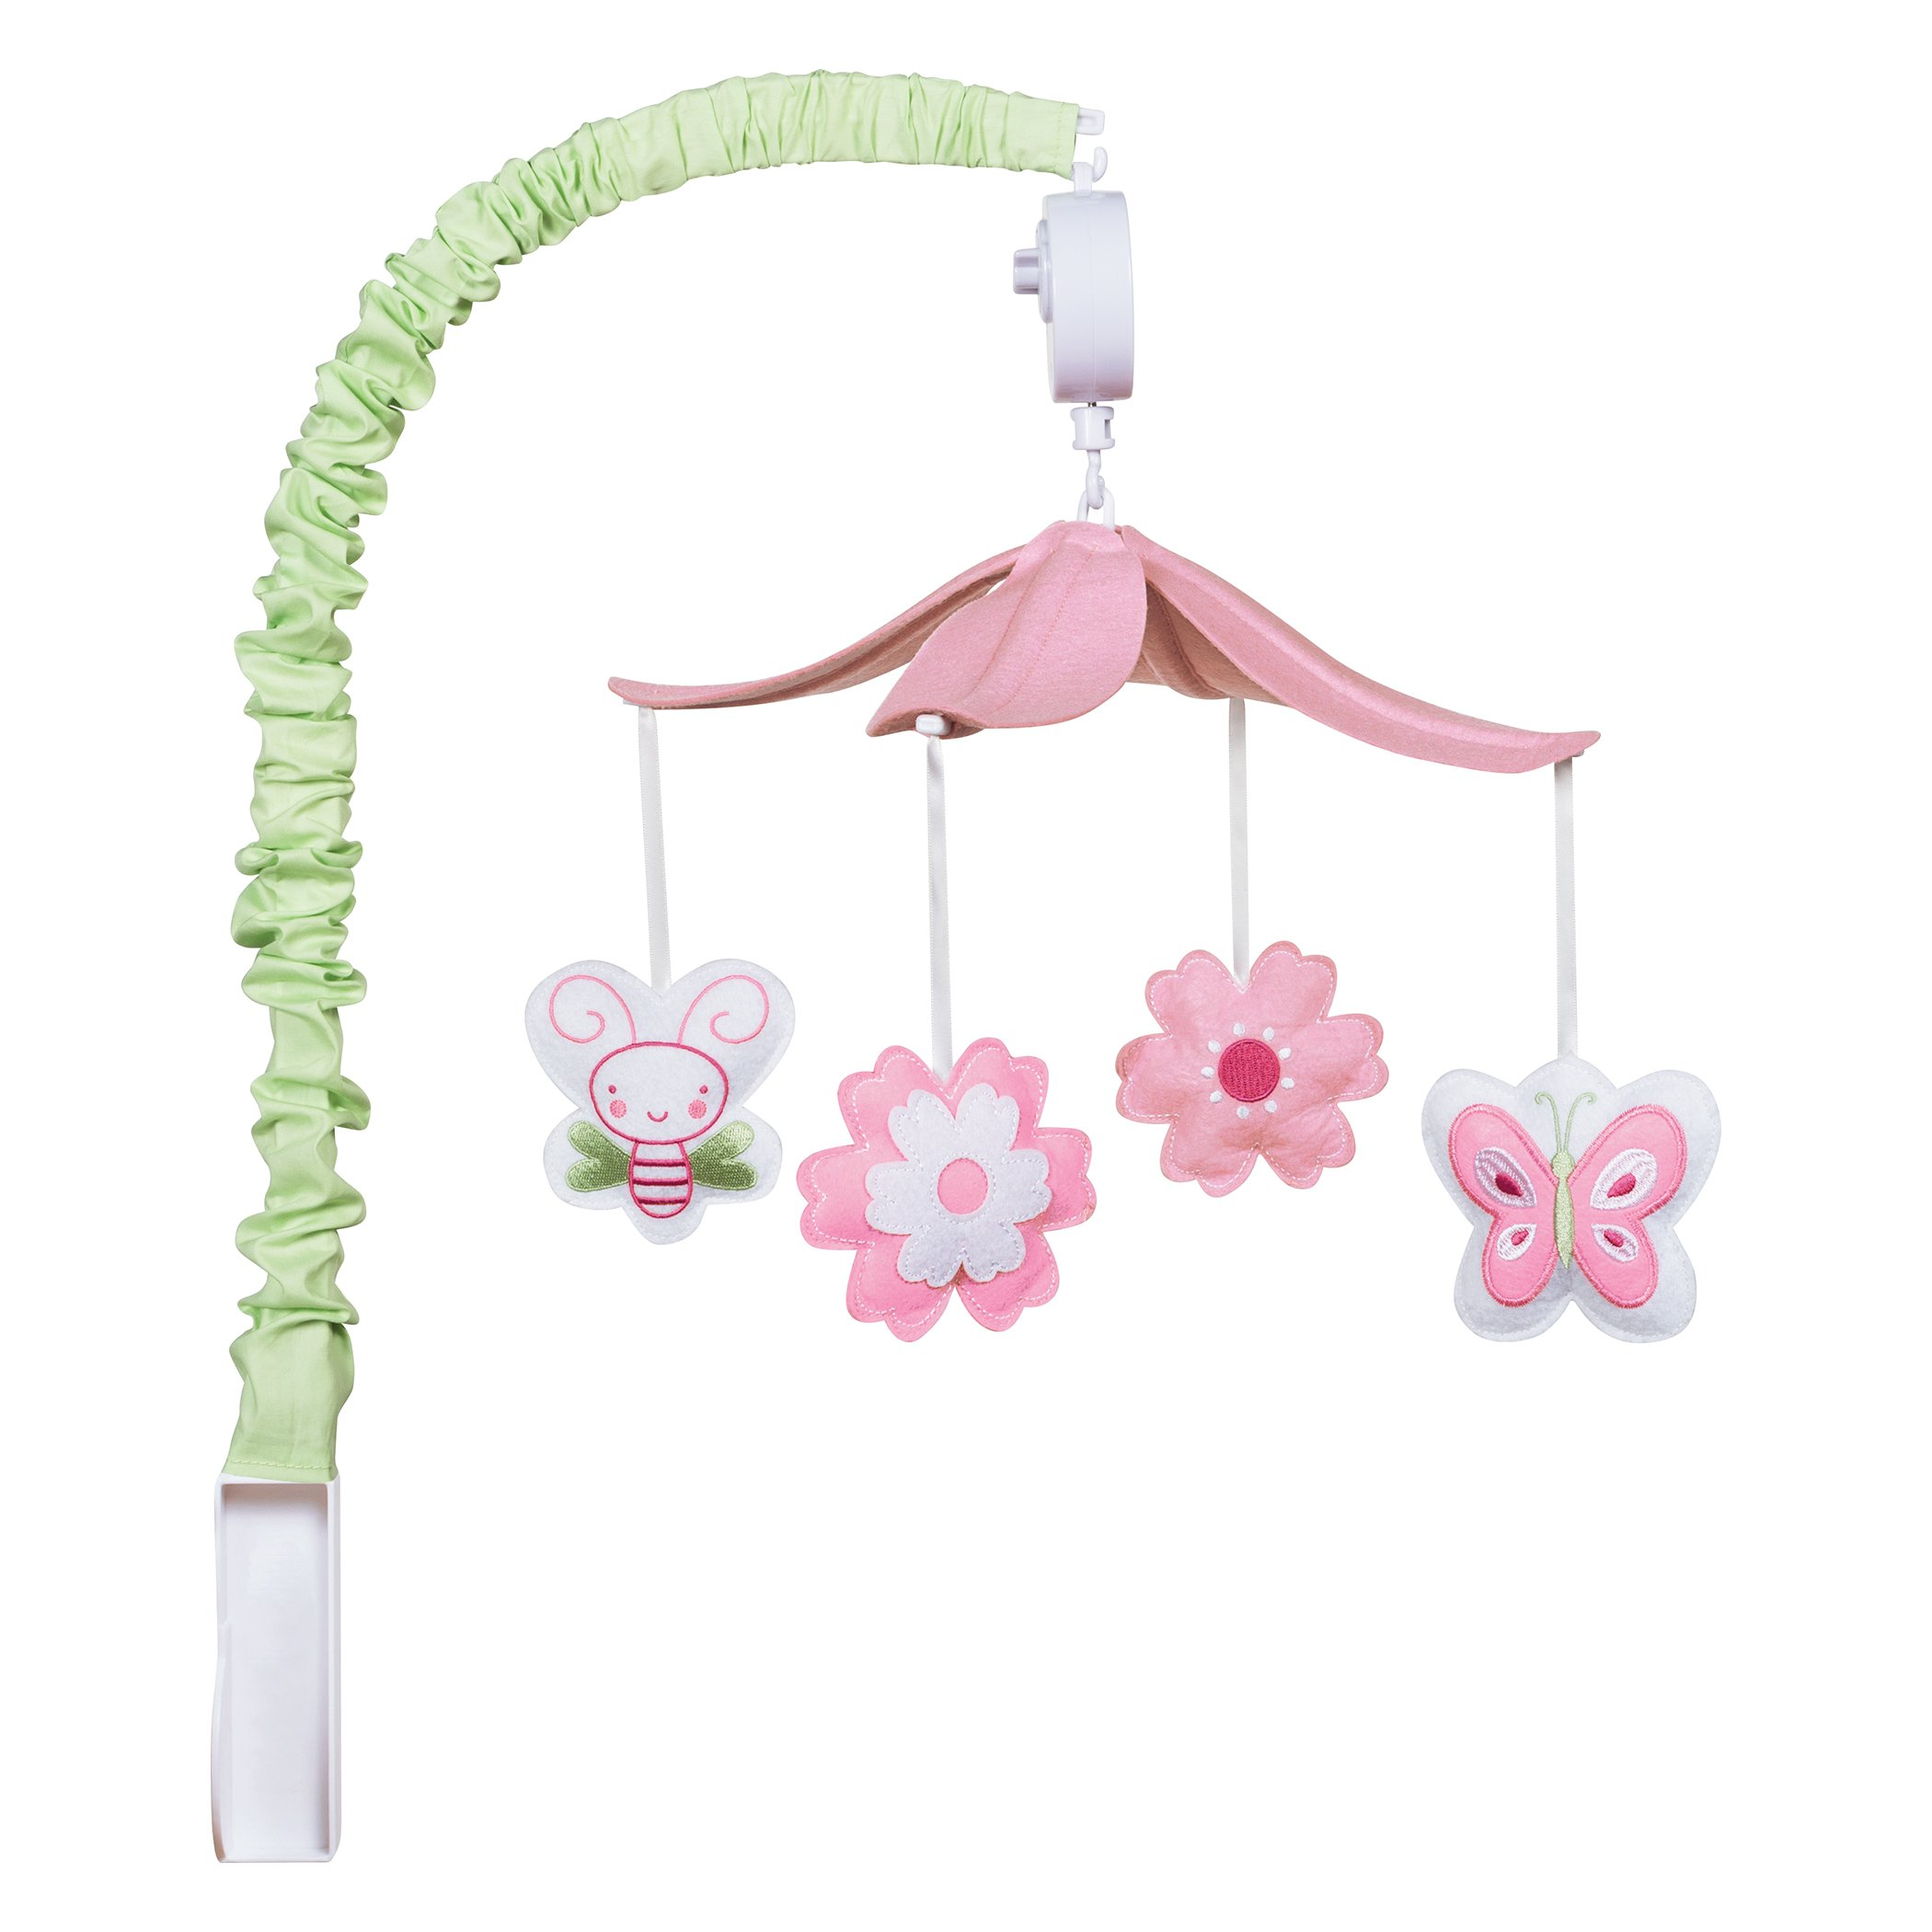 Trend Lab Felt Floral Musical Crib Mobile, Butterfly and Bees Baby Mobile, Floral and Butterflies Nursery Décor by Trend Lab